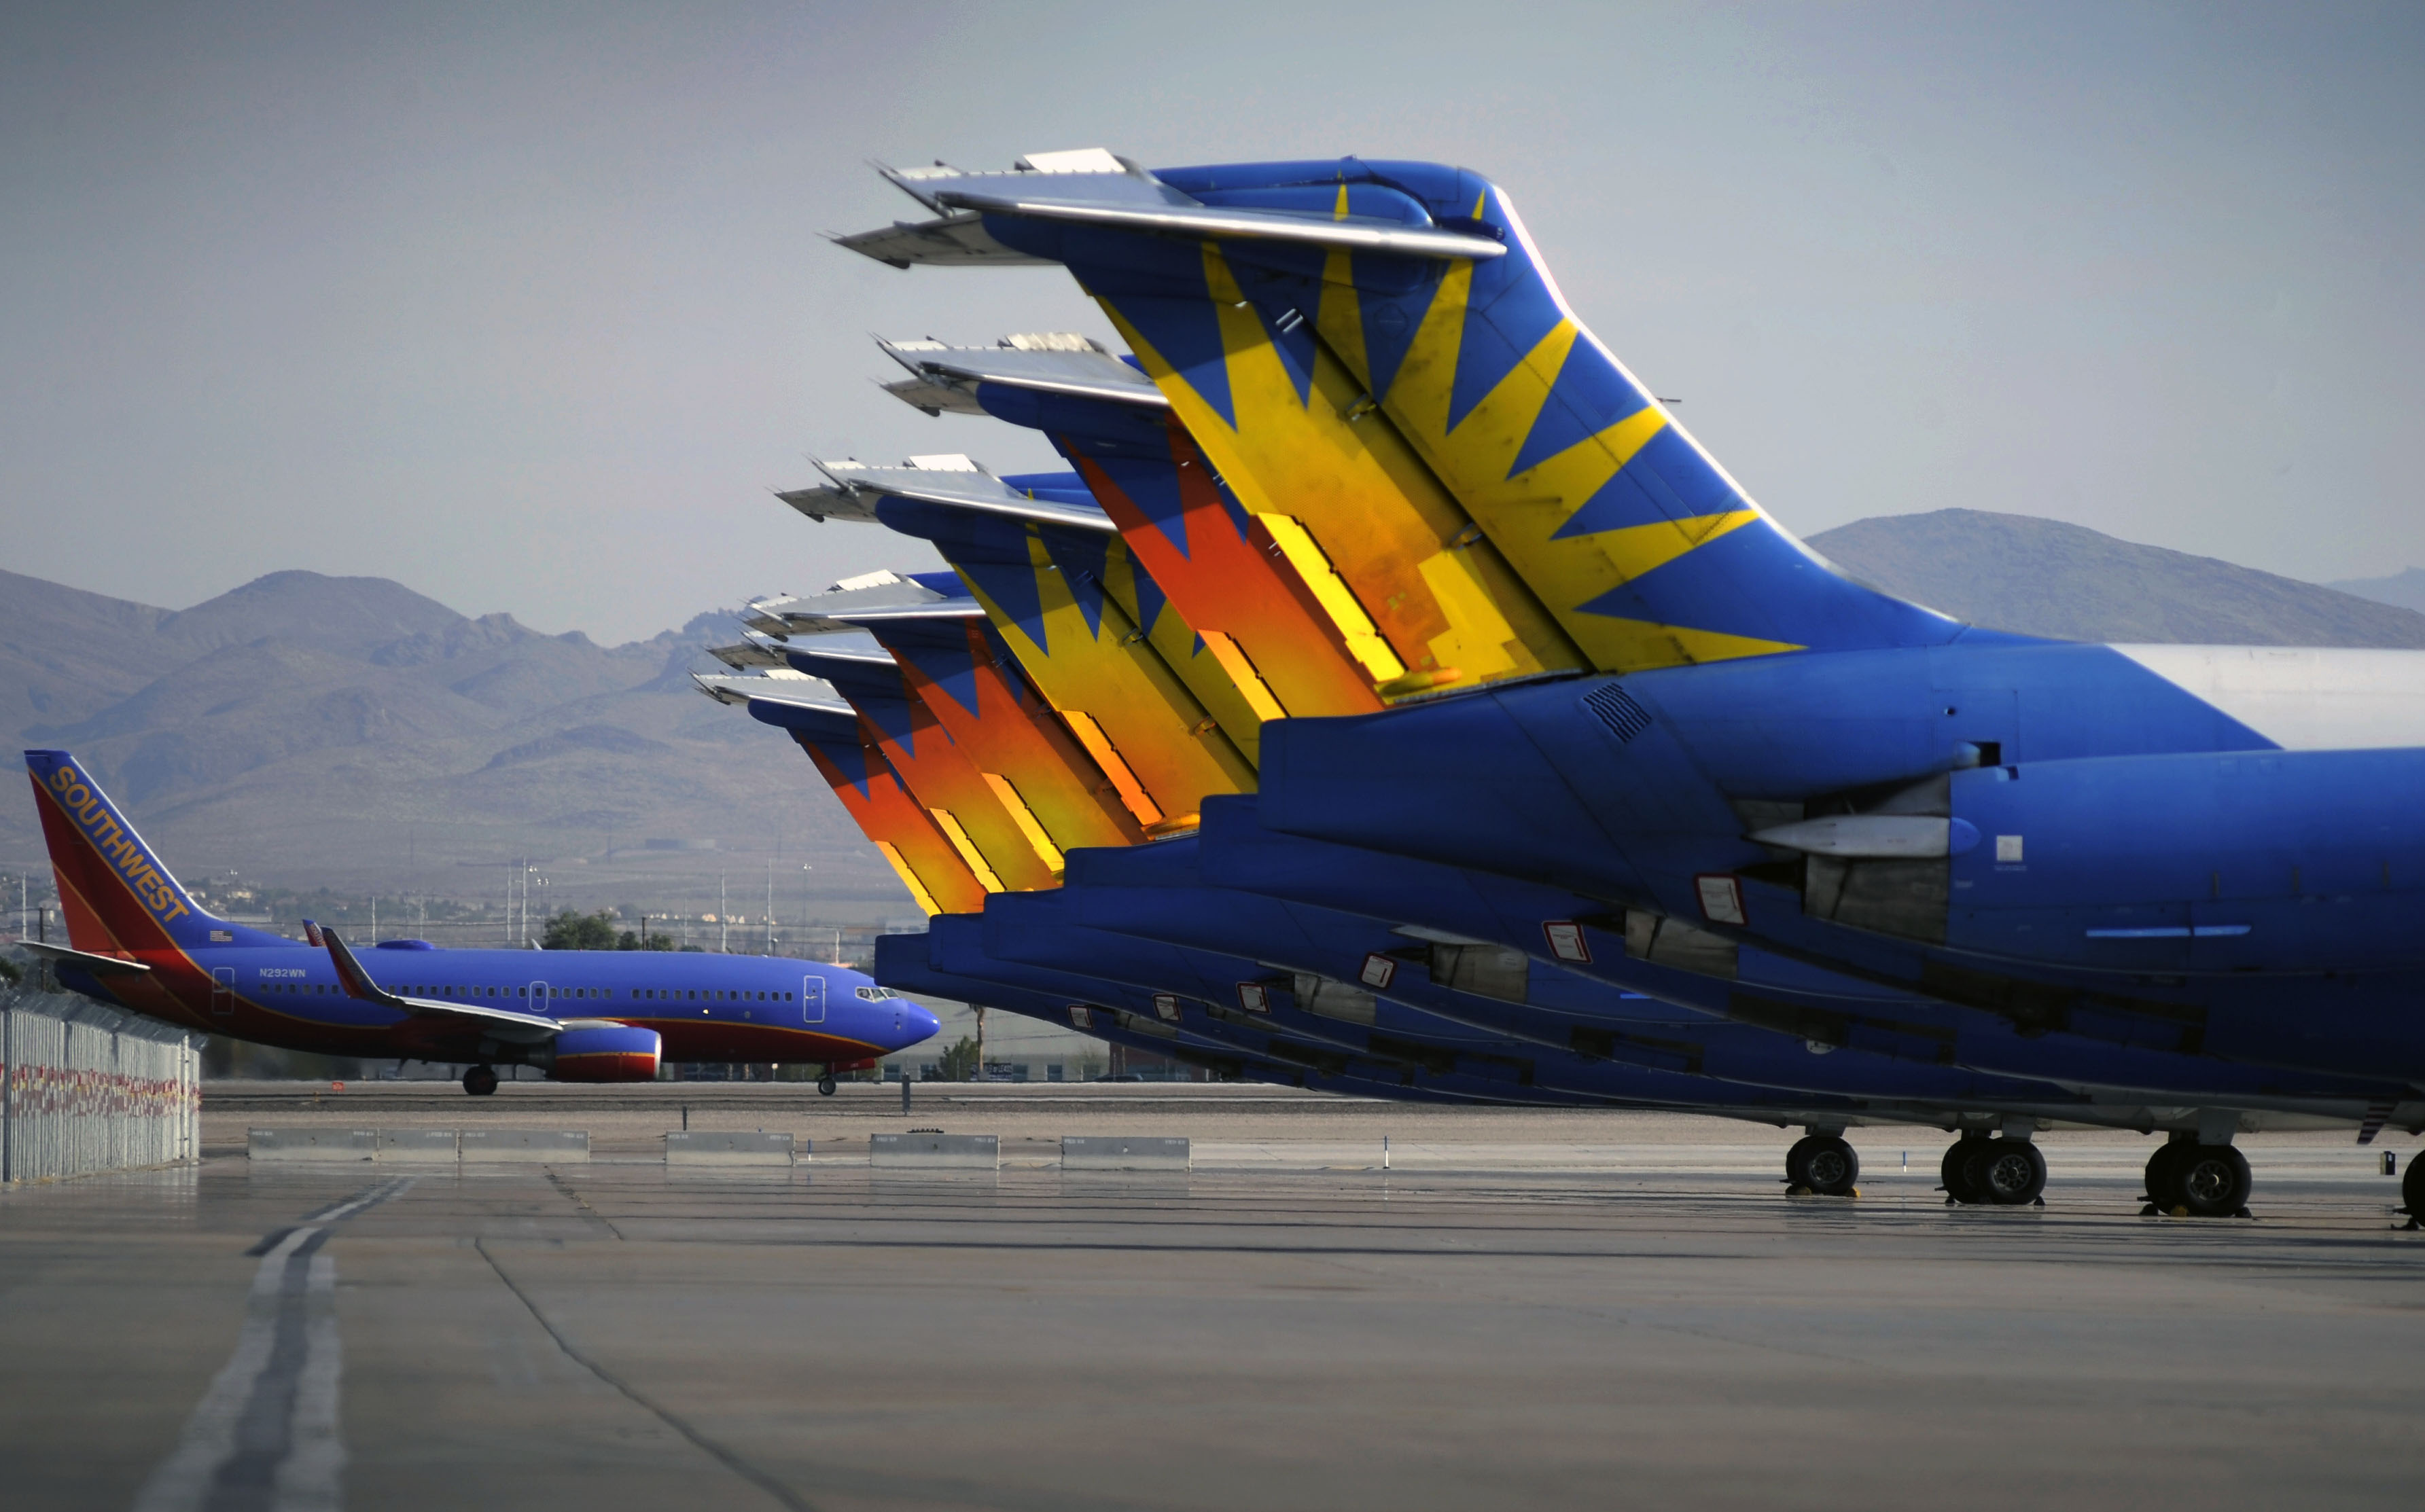 Photo: Allegiant Air jets (AP Photo)